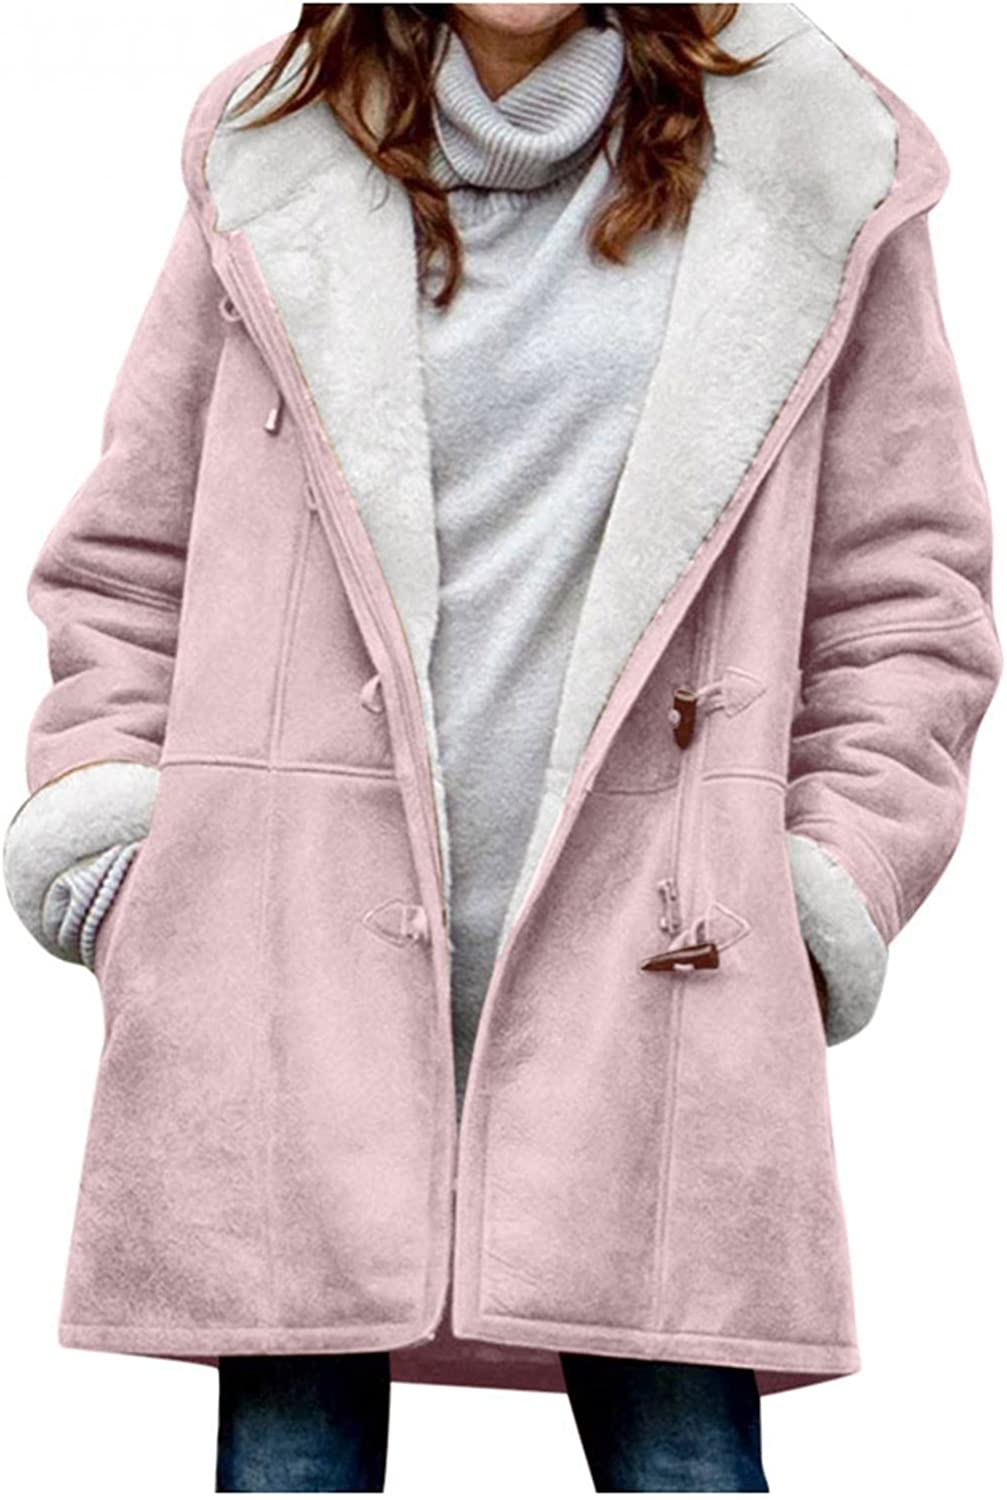 CCOOfhhc Womens Winter Warm Coats Plus Size Sherpa Fleece Lined Hooded Jackets Button Down Solid Thicken Warm Parkas Pea Coat